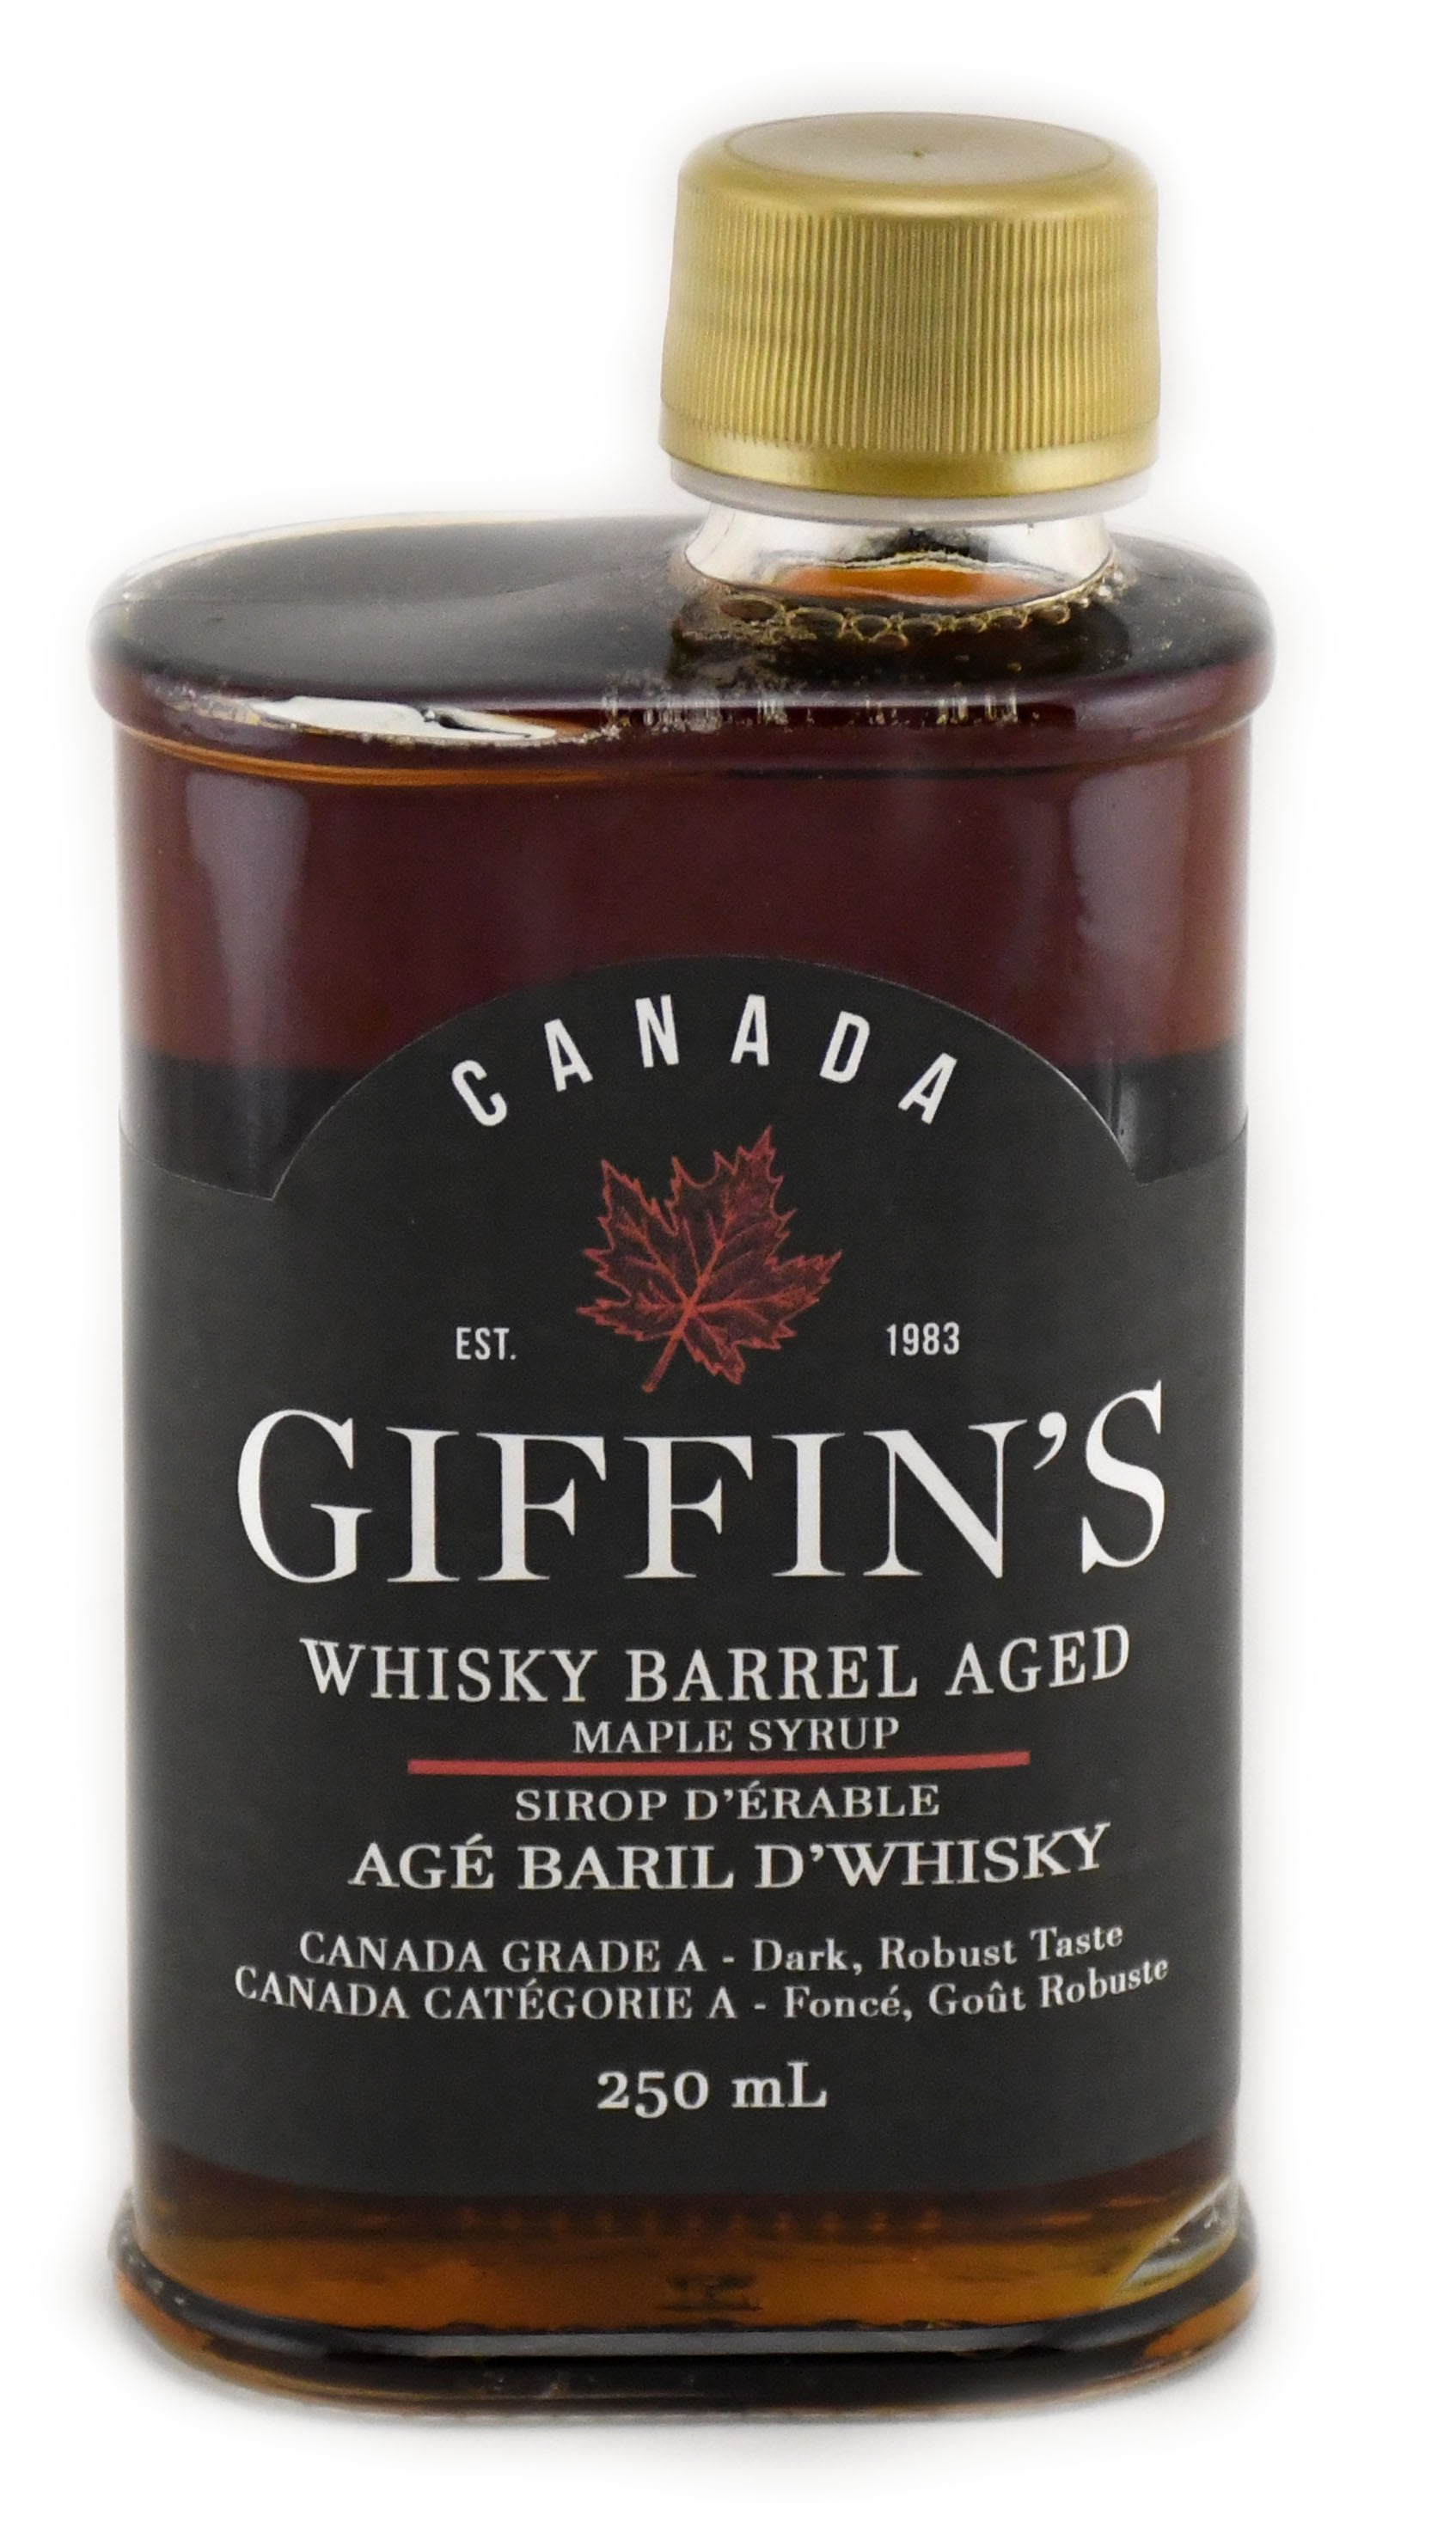 250 ml Whisky Barrel Aged Syrup - Canada Grade A - Dark